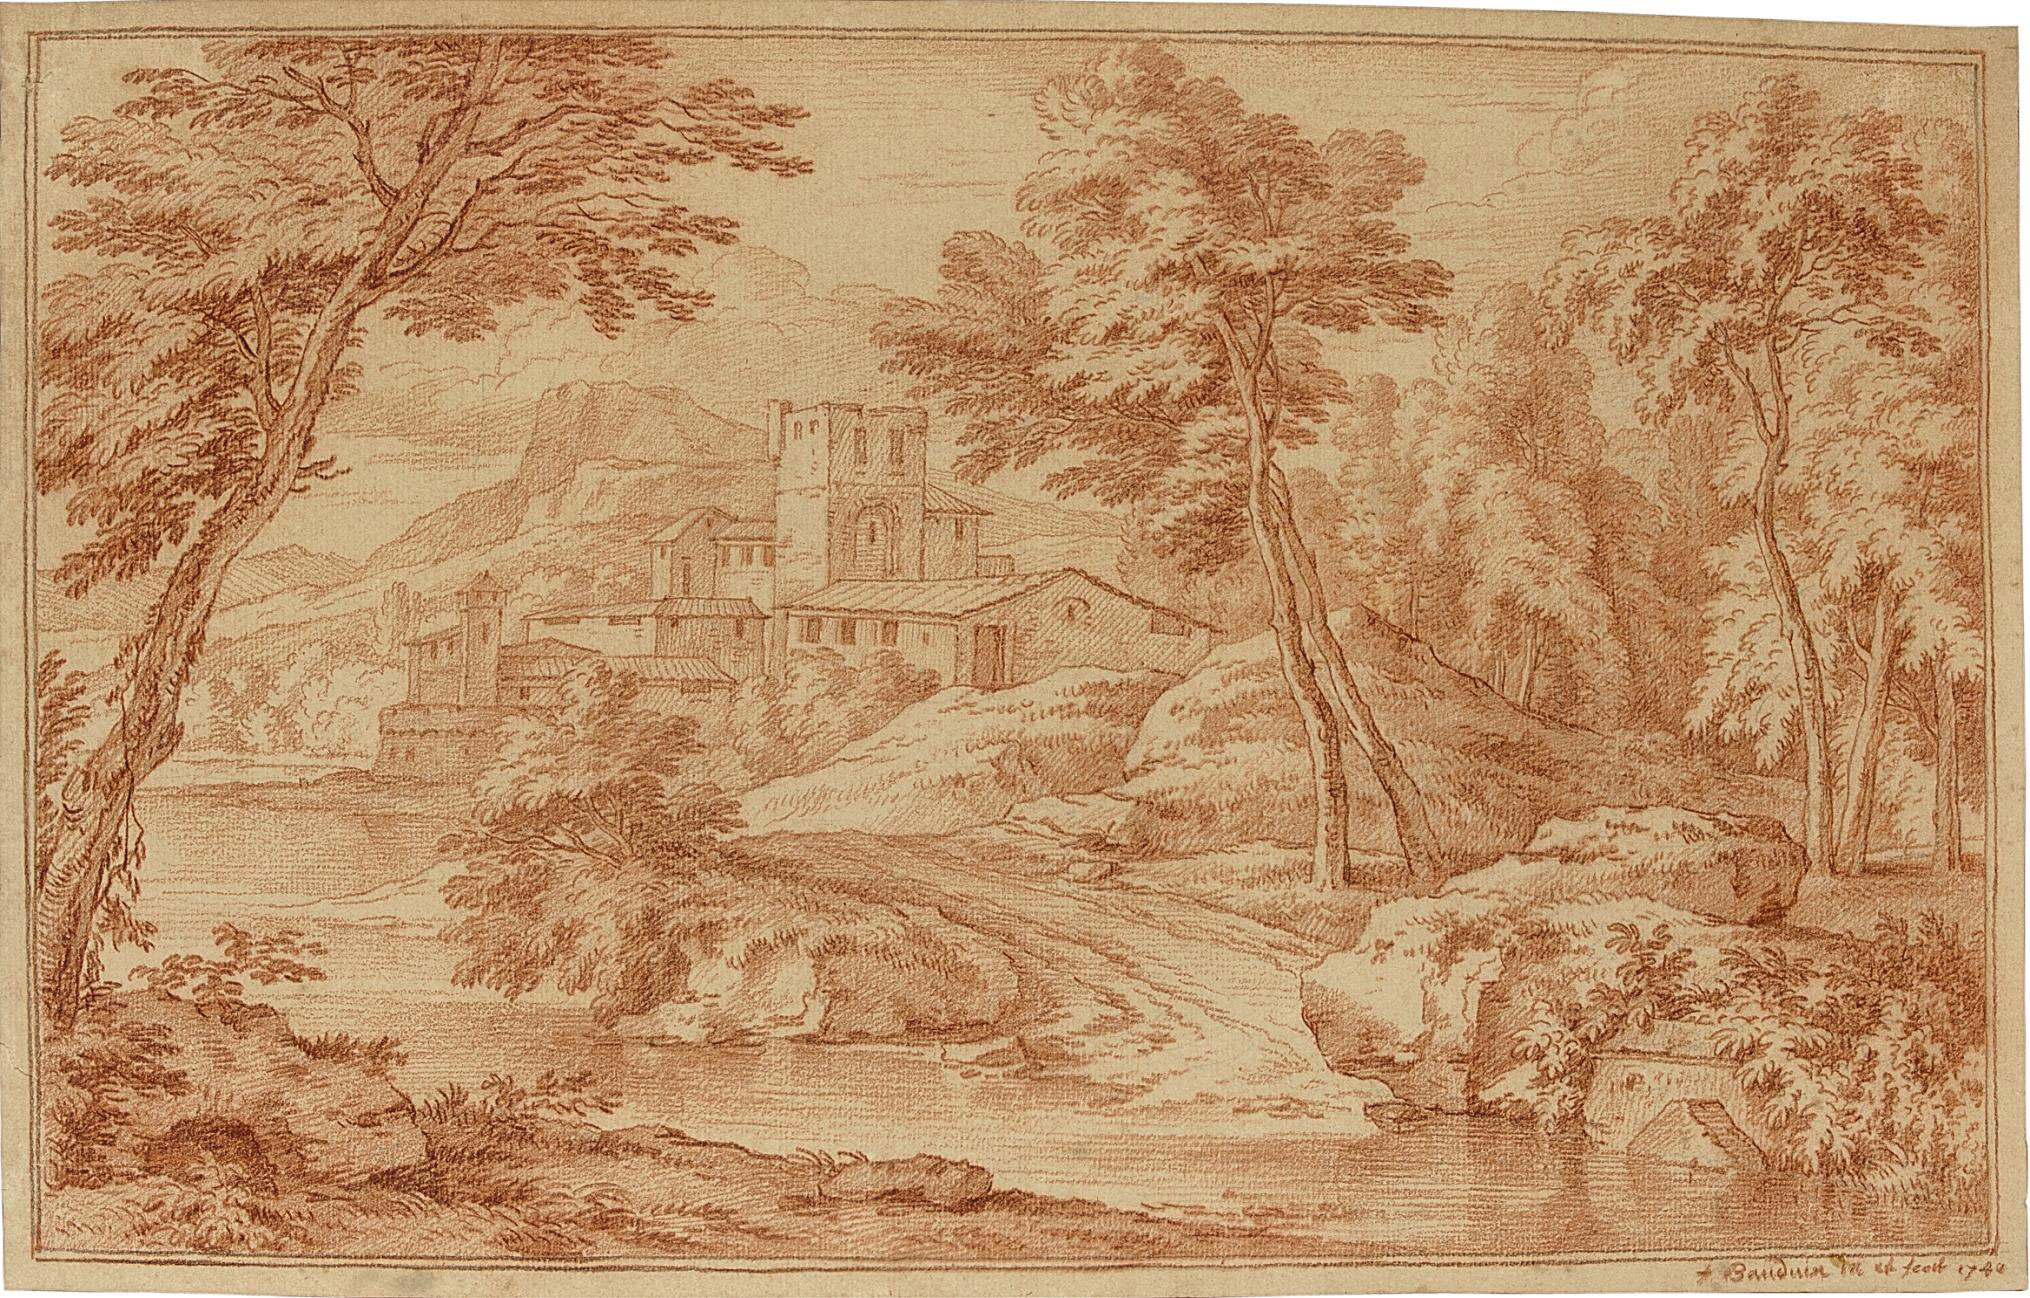 Wooded Italian landscapes with monasteries